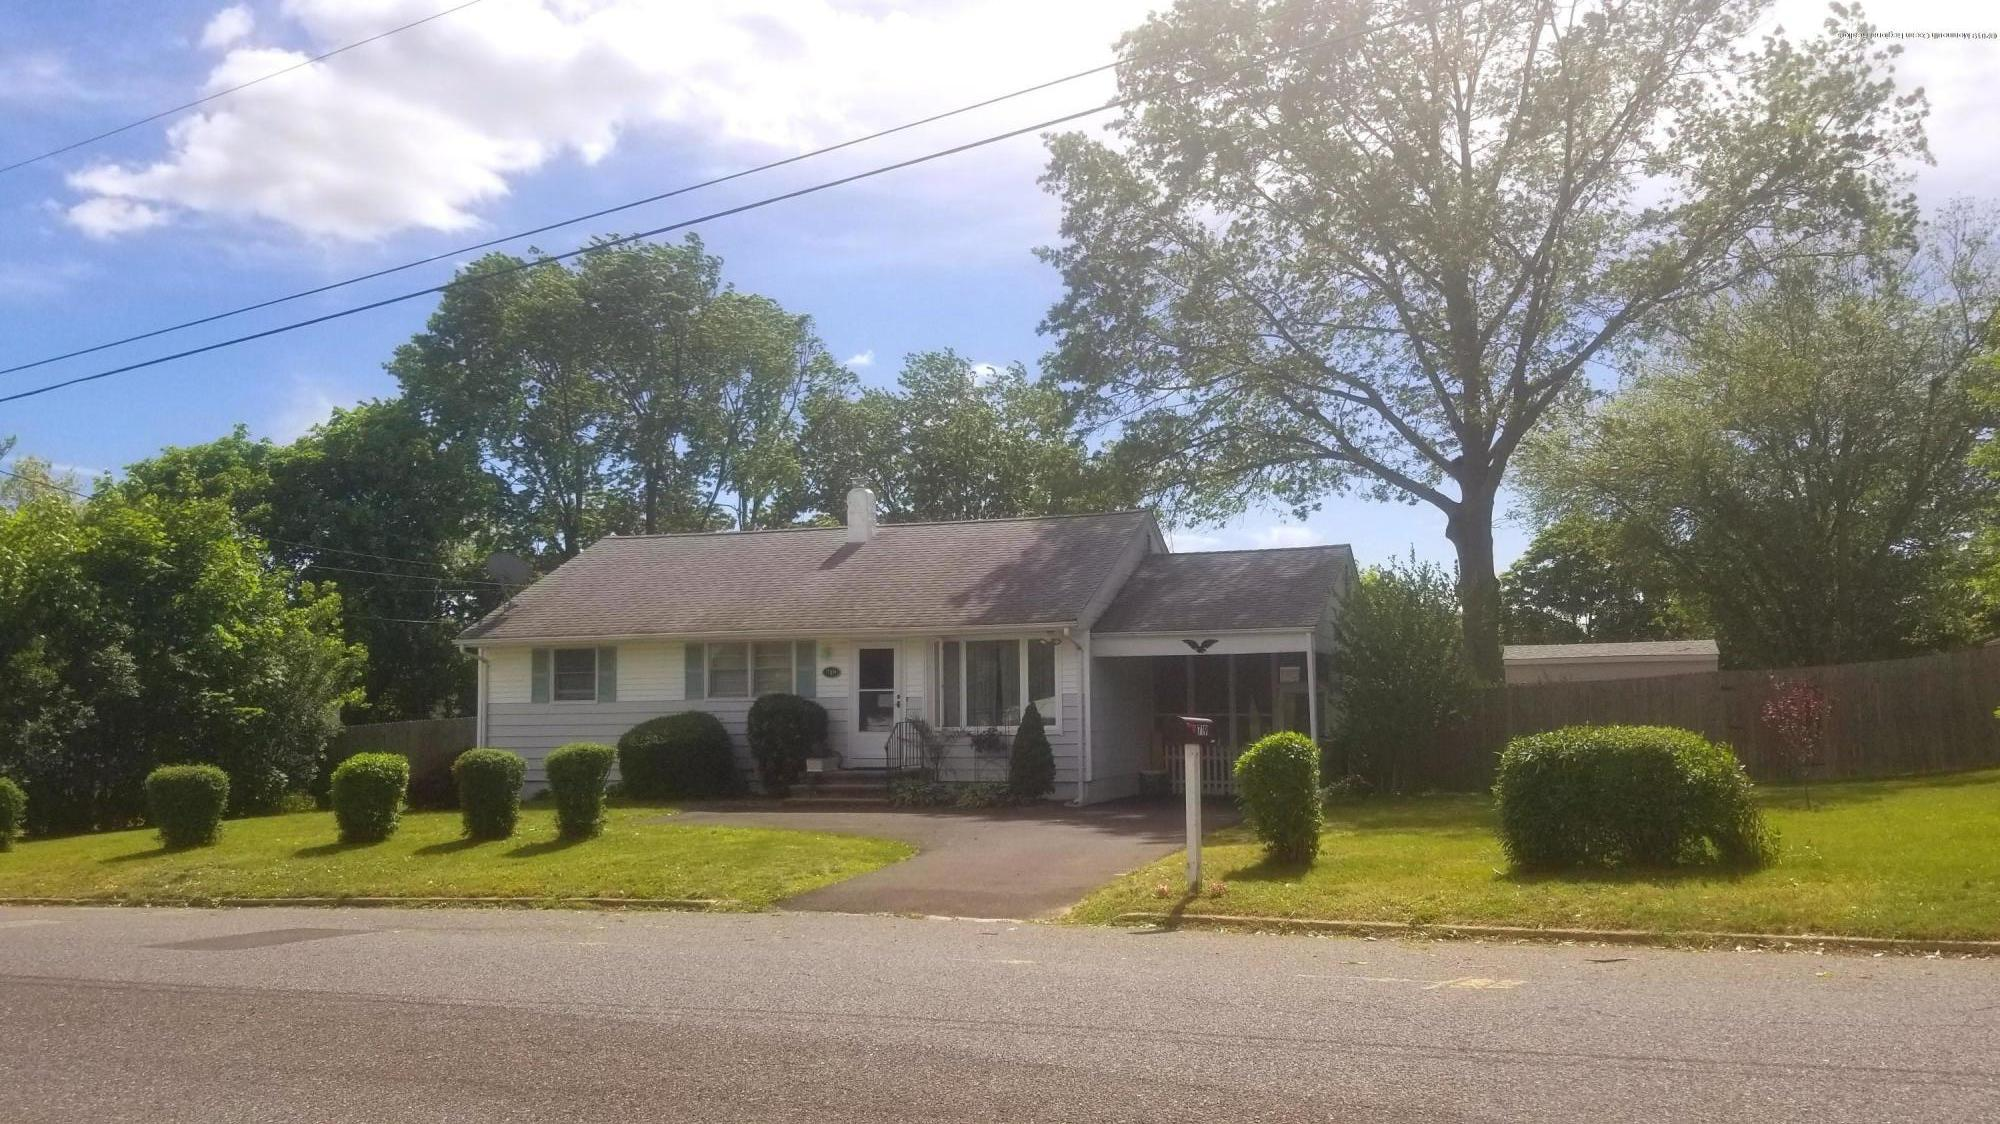 Beautiful Ranch in Green Grove Estate. Upgraded kitchen with Pergo Floors and Granite Counter Tops. Hardwood floors with a deck conveniently located off the kitchen. Large fenced yard with a carport and screened sunroom. Full basement with lots of room for a workshop in a quiet neighborhood. Short ride to route 18, GSP and Rt. 66.